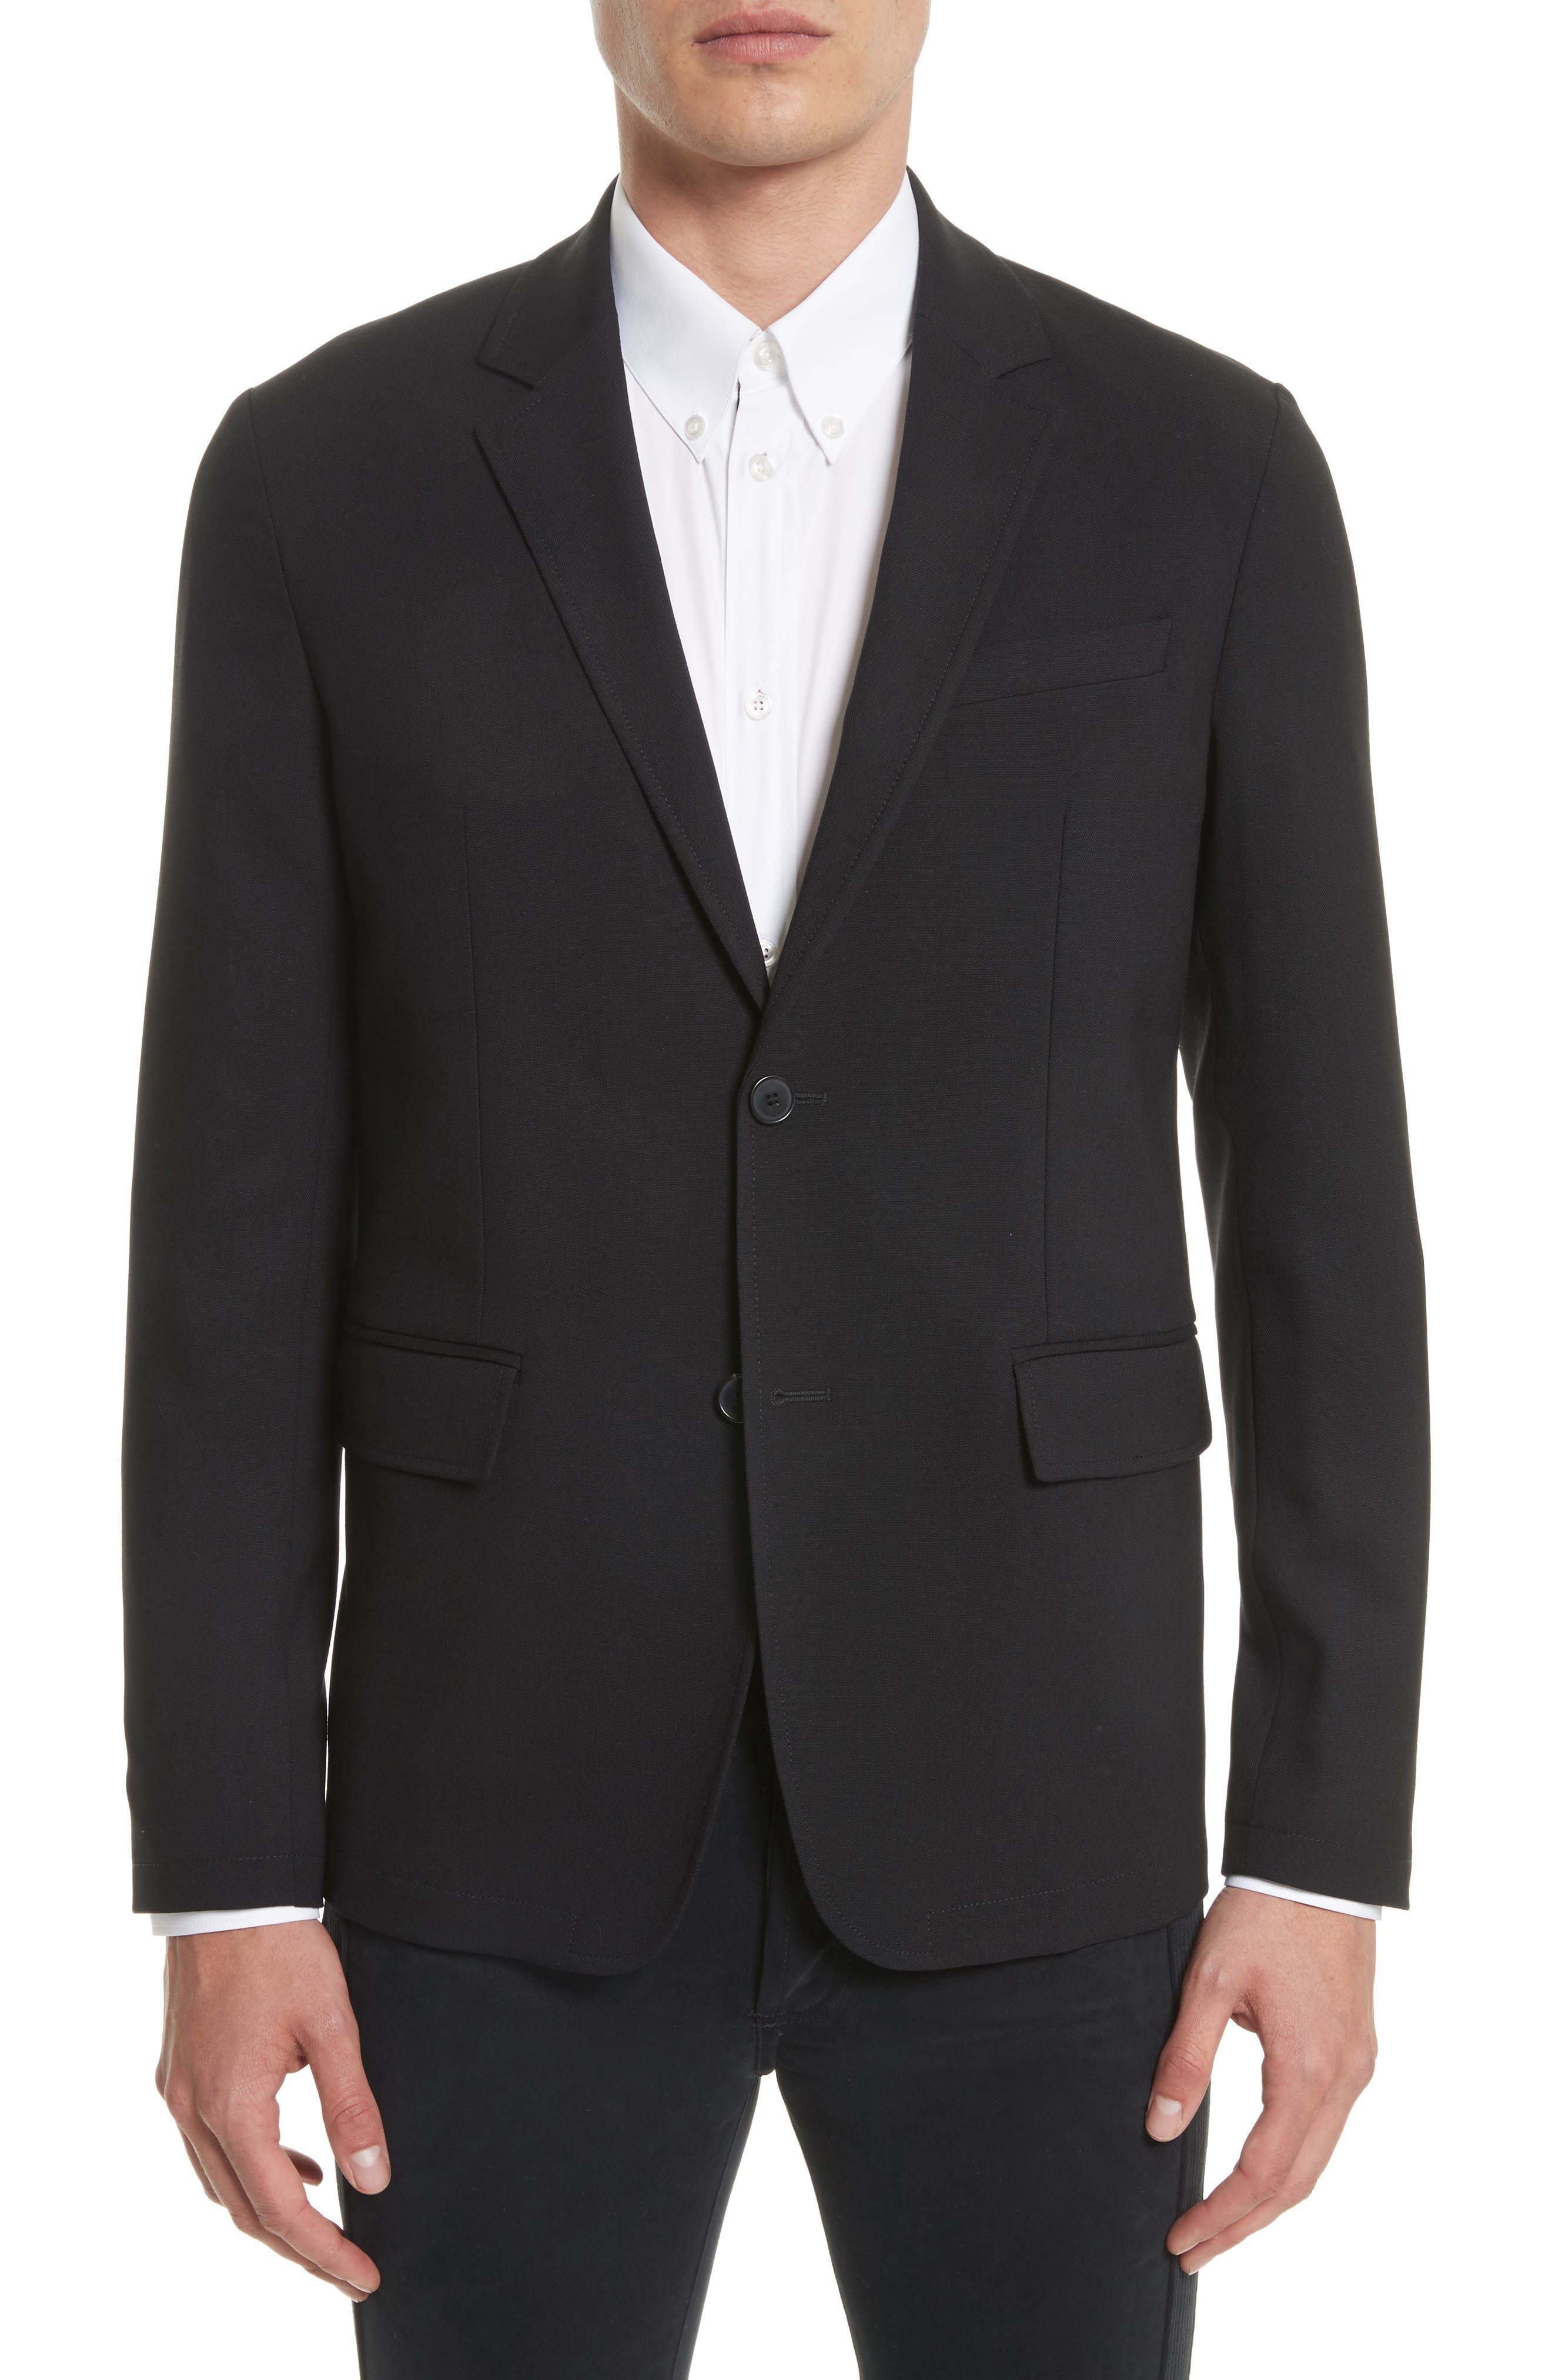 Star Tape Stretch Wool Jacket,                             Main thumbnail 1, color,